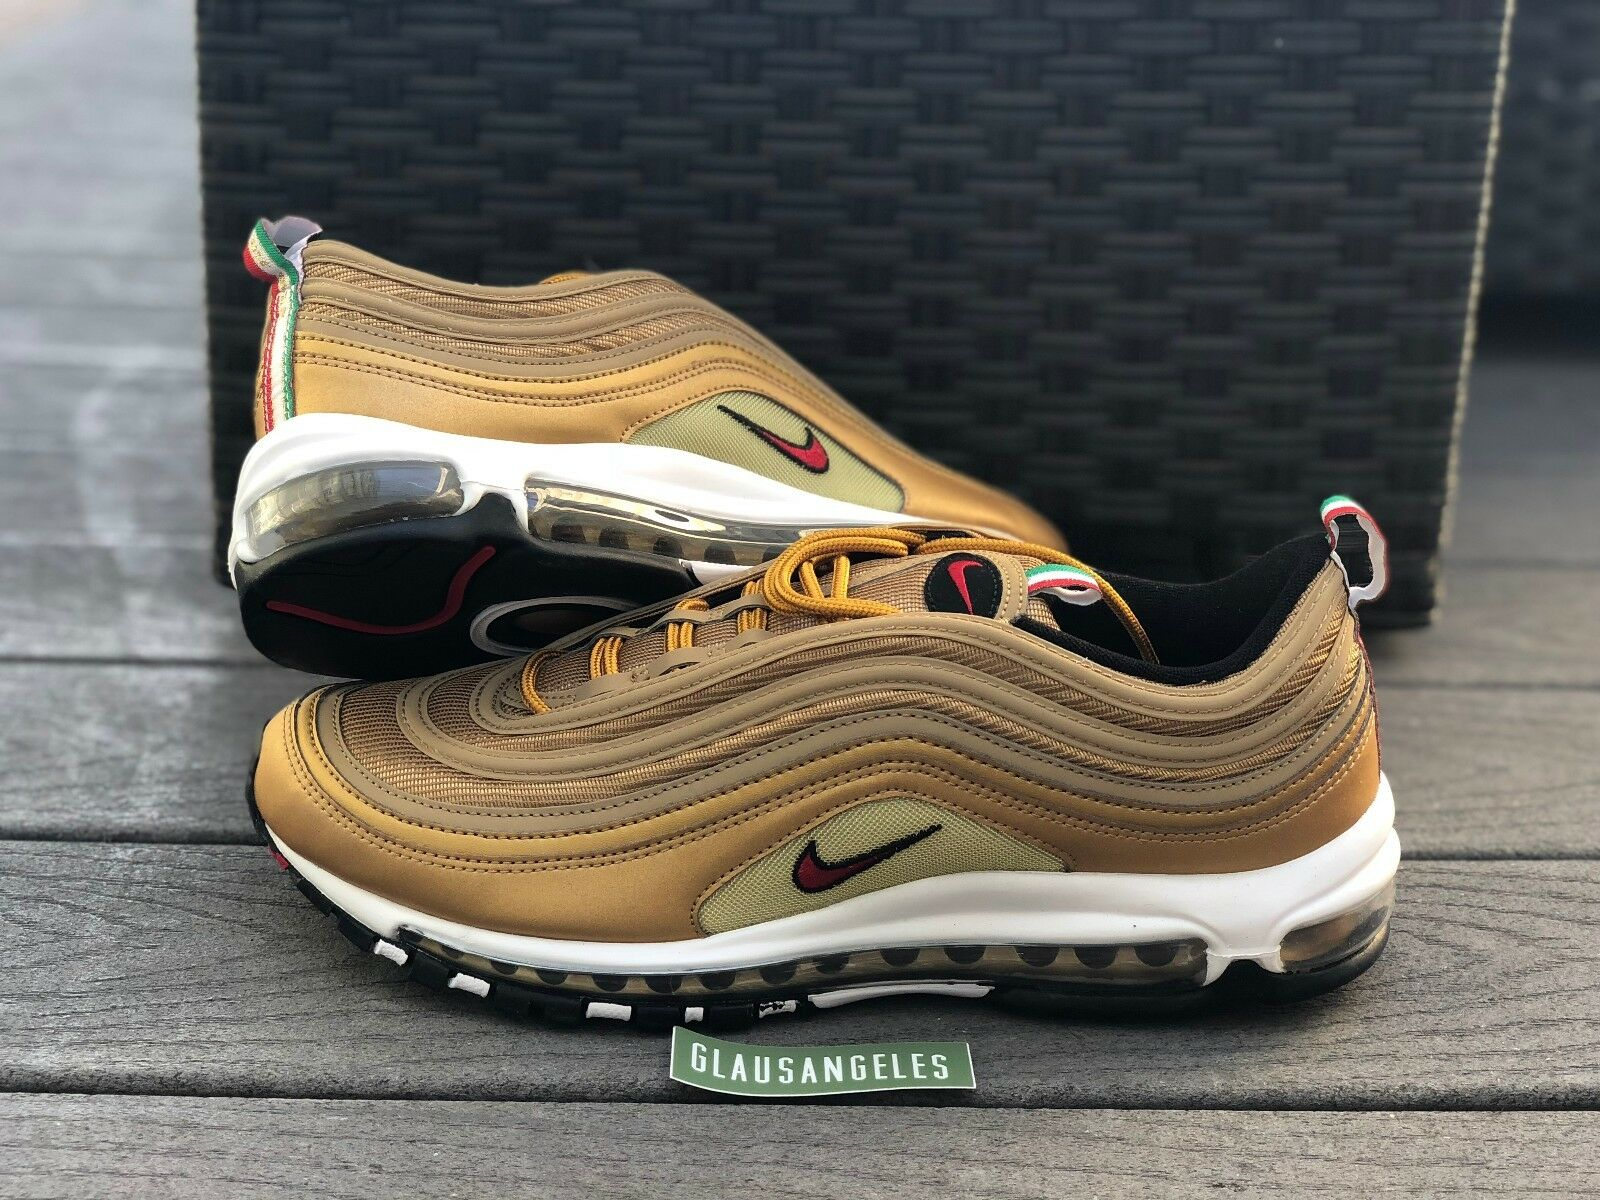 Air Max 97 Gold Italy Italian Flag sz 8 8.5 9 10.5 11  AJ8056 700 DS